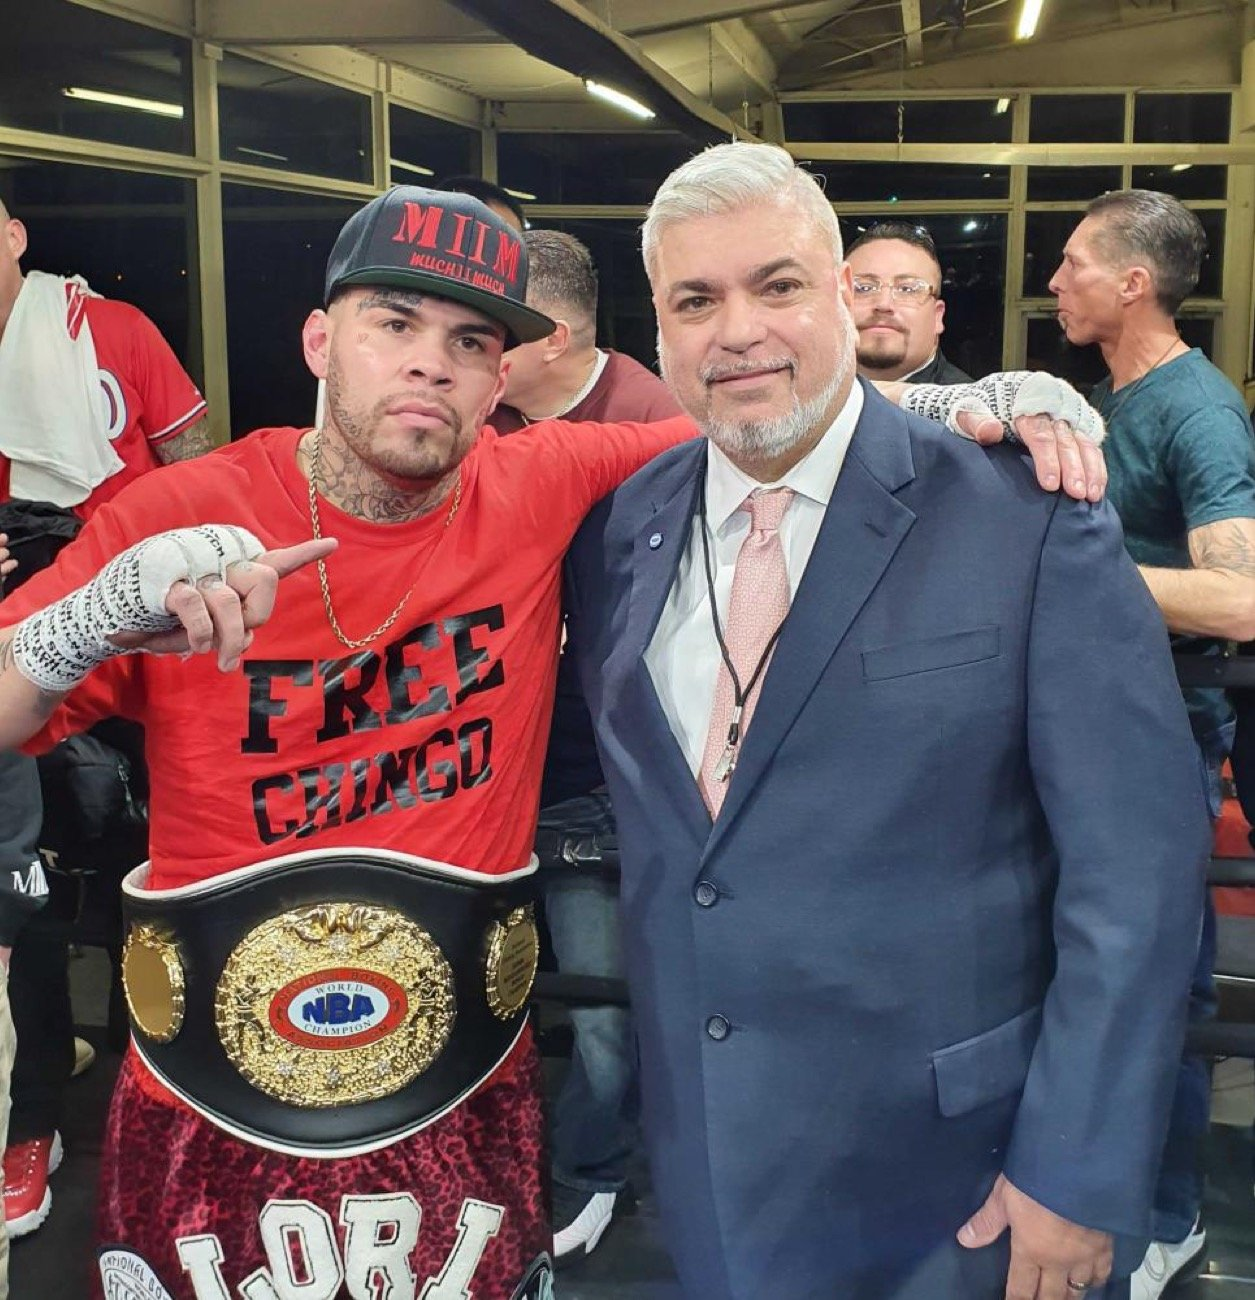 Photo: MARVIN CORDOVA JR., left, captured the vacant NBA World Super Middleweight Title on Saturday with a knockout win over Hector Velazquez in his hometown of Pueblo, Colorado. The fight was Cordova Jr.'s first in three years and just his second in the last decade. The former amateur standout is now a three-time title-holder looking to add a world title to his resume in 2020 under the promotional guidance of CES Boxing, whom he signed with in 2019.